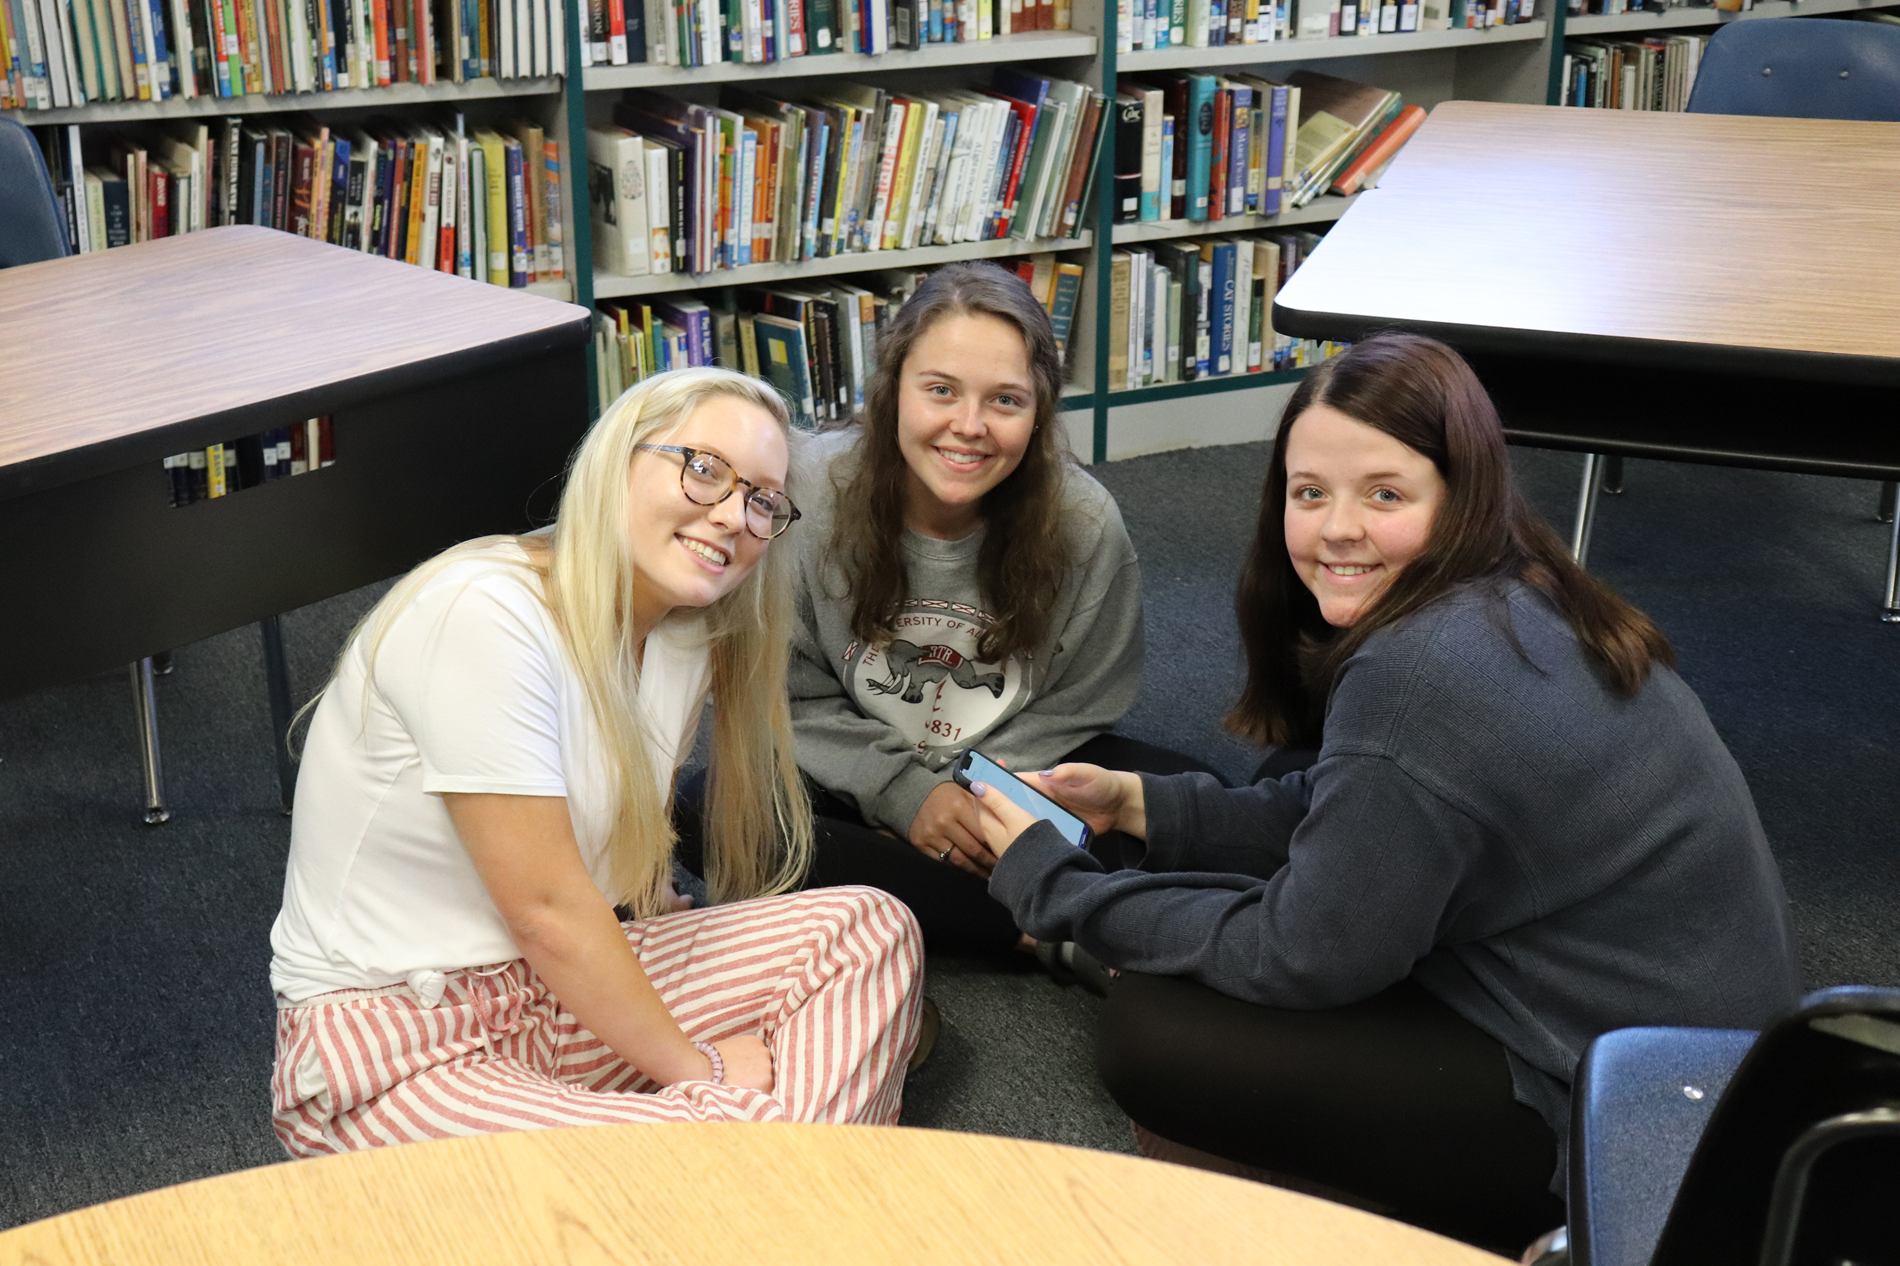 Gracey, Kayla, and Sara Beth are chilling in the library.